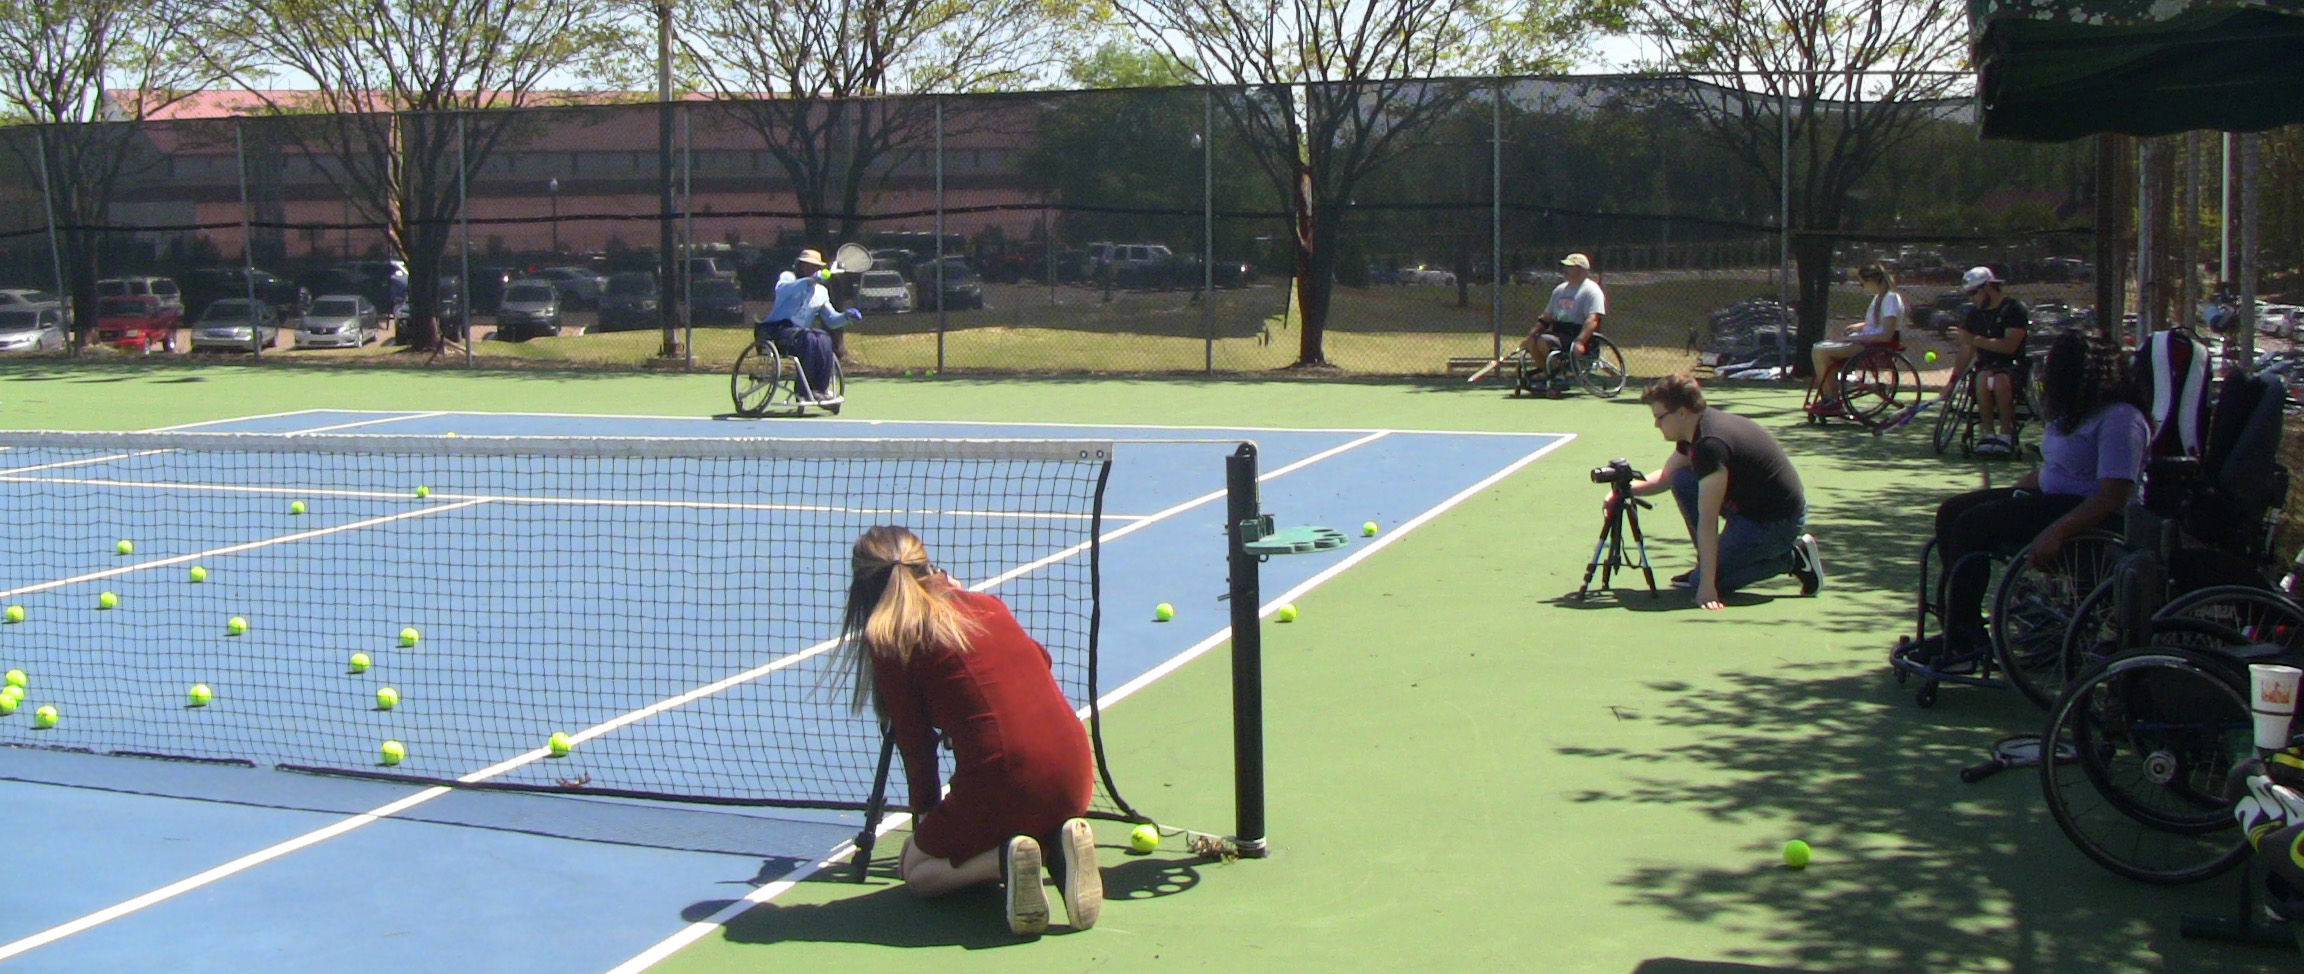 2019 Wheelchair Tennis Picture 3